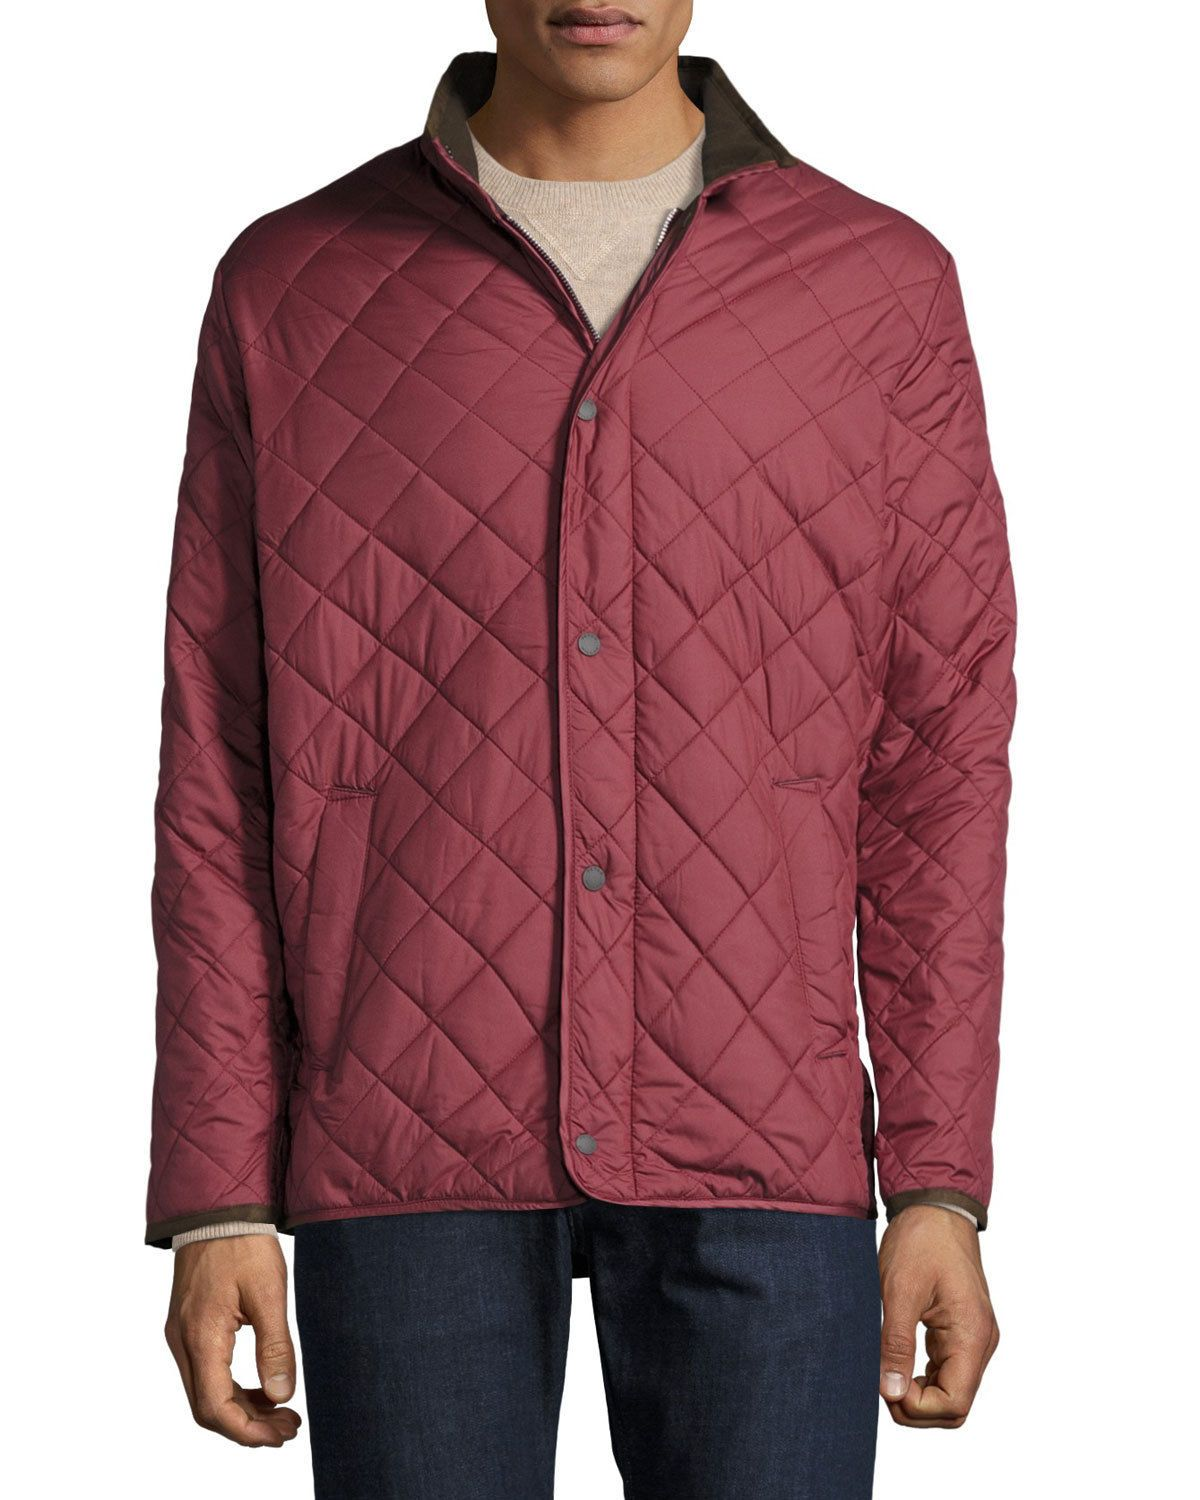 5da2781bc340 NWT  195 MENS PETER MILLAR NORFOLK QUILTED JACKET IN POMEGRANATE COLOR SIZE  M  pomegranate  color  size  jacket  quilted  peter  millar  norfolk  mens